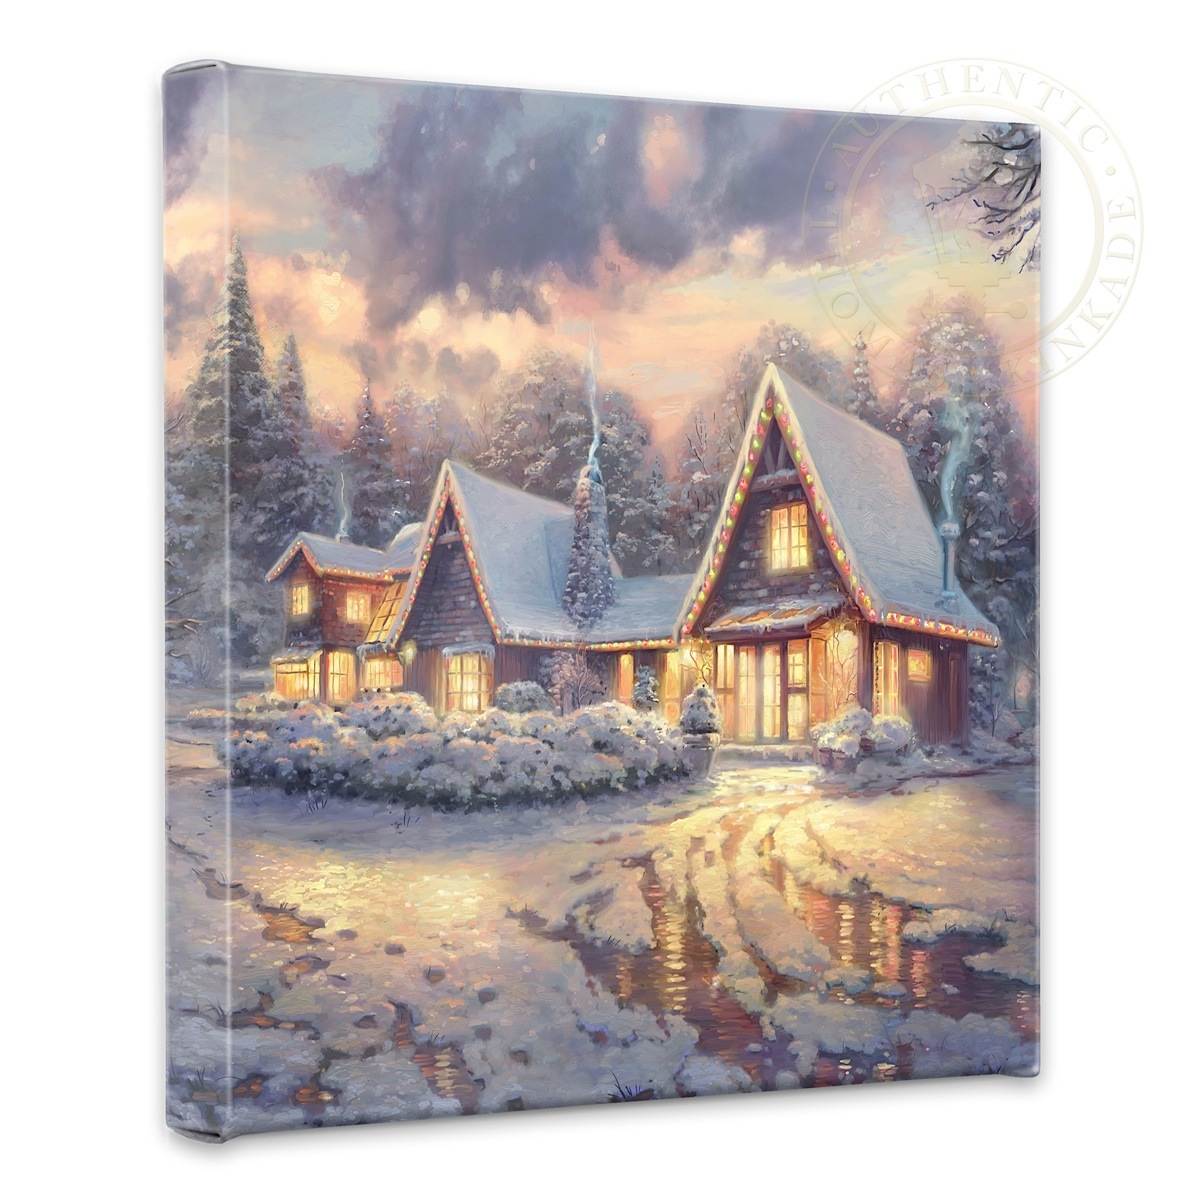 "Christmas Lodge - 14"" x 14"" Gallery Wrapped Canvas"